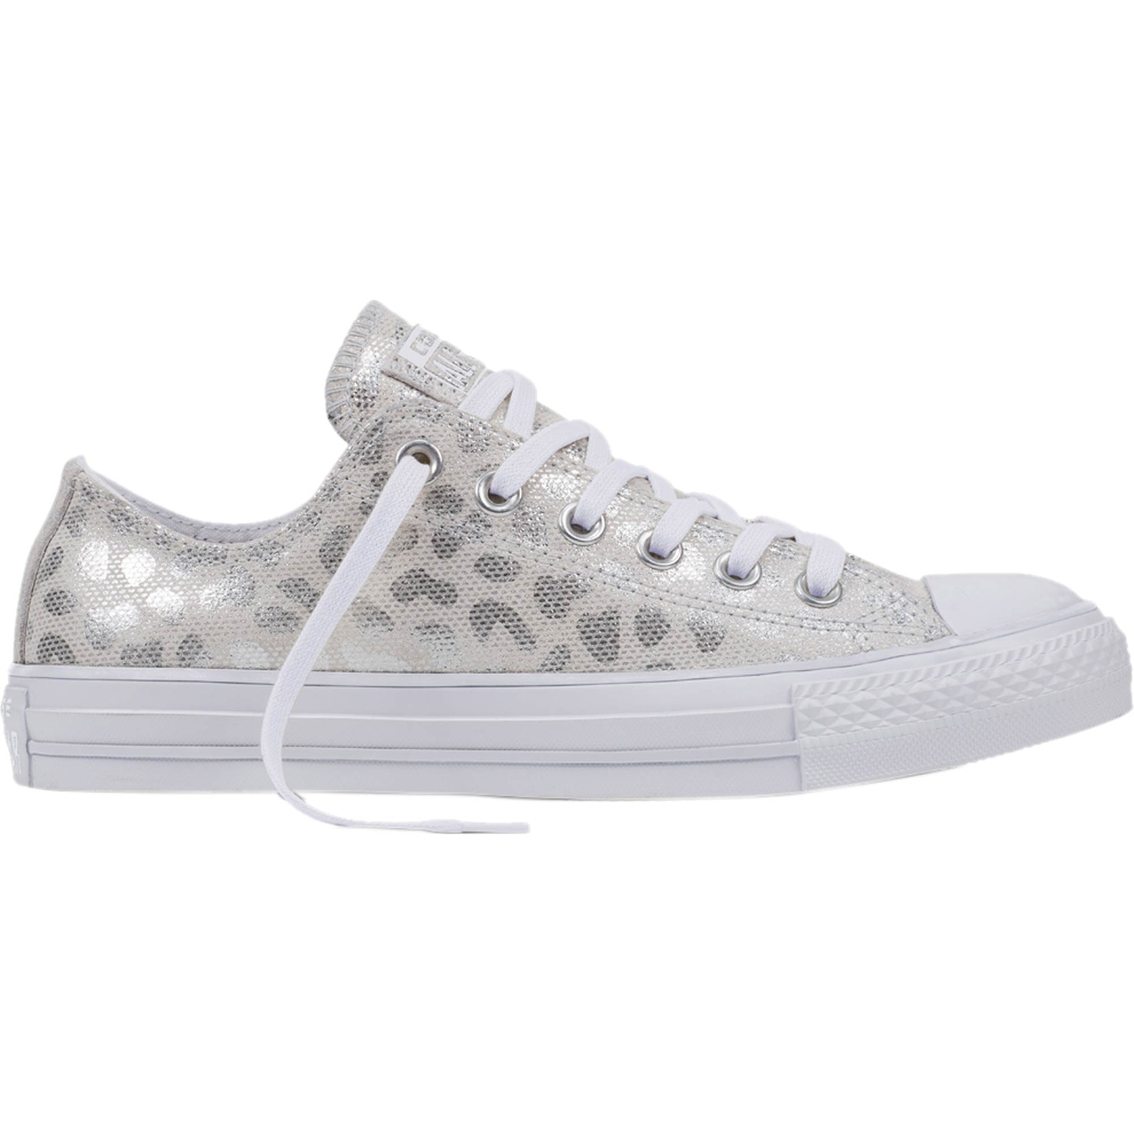 4b003cc41d4a Converse Chuck Taylor All Star Women s Oxford Athletic Shoes ...